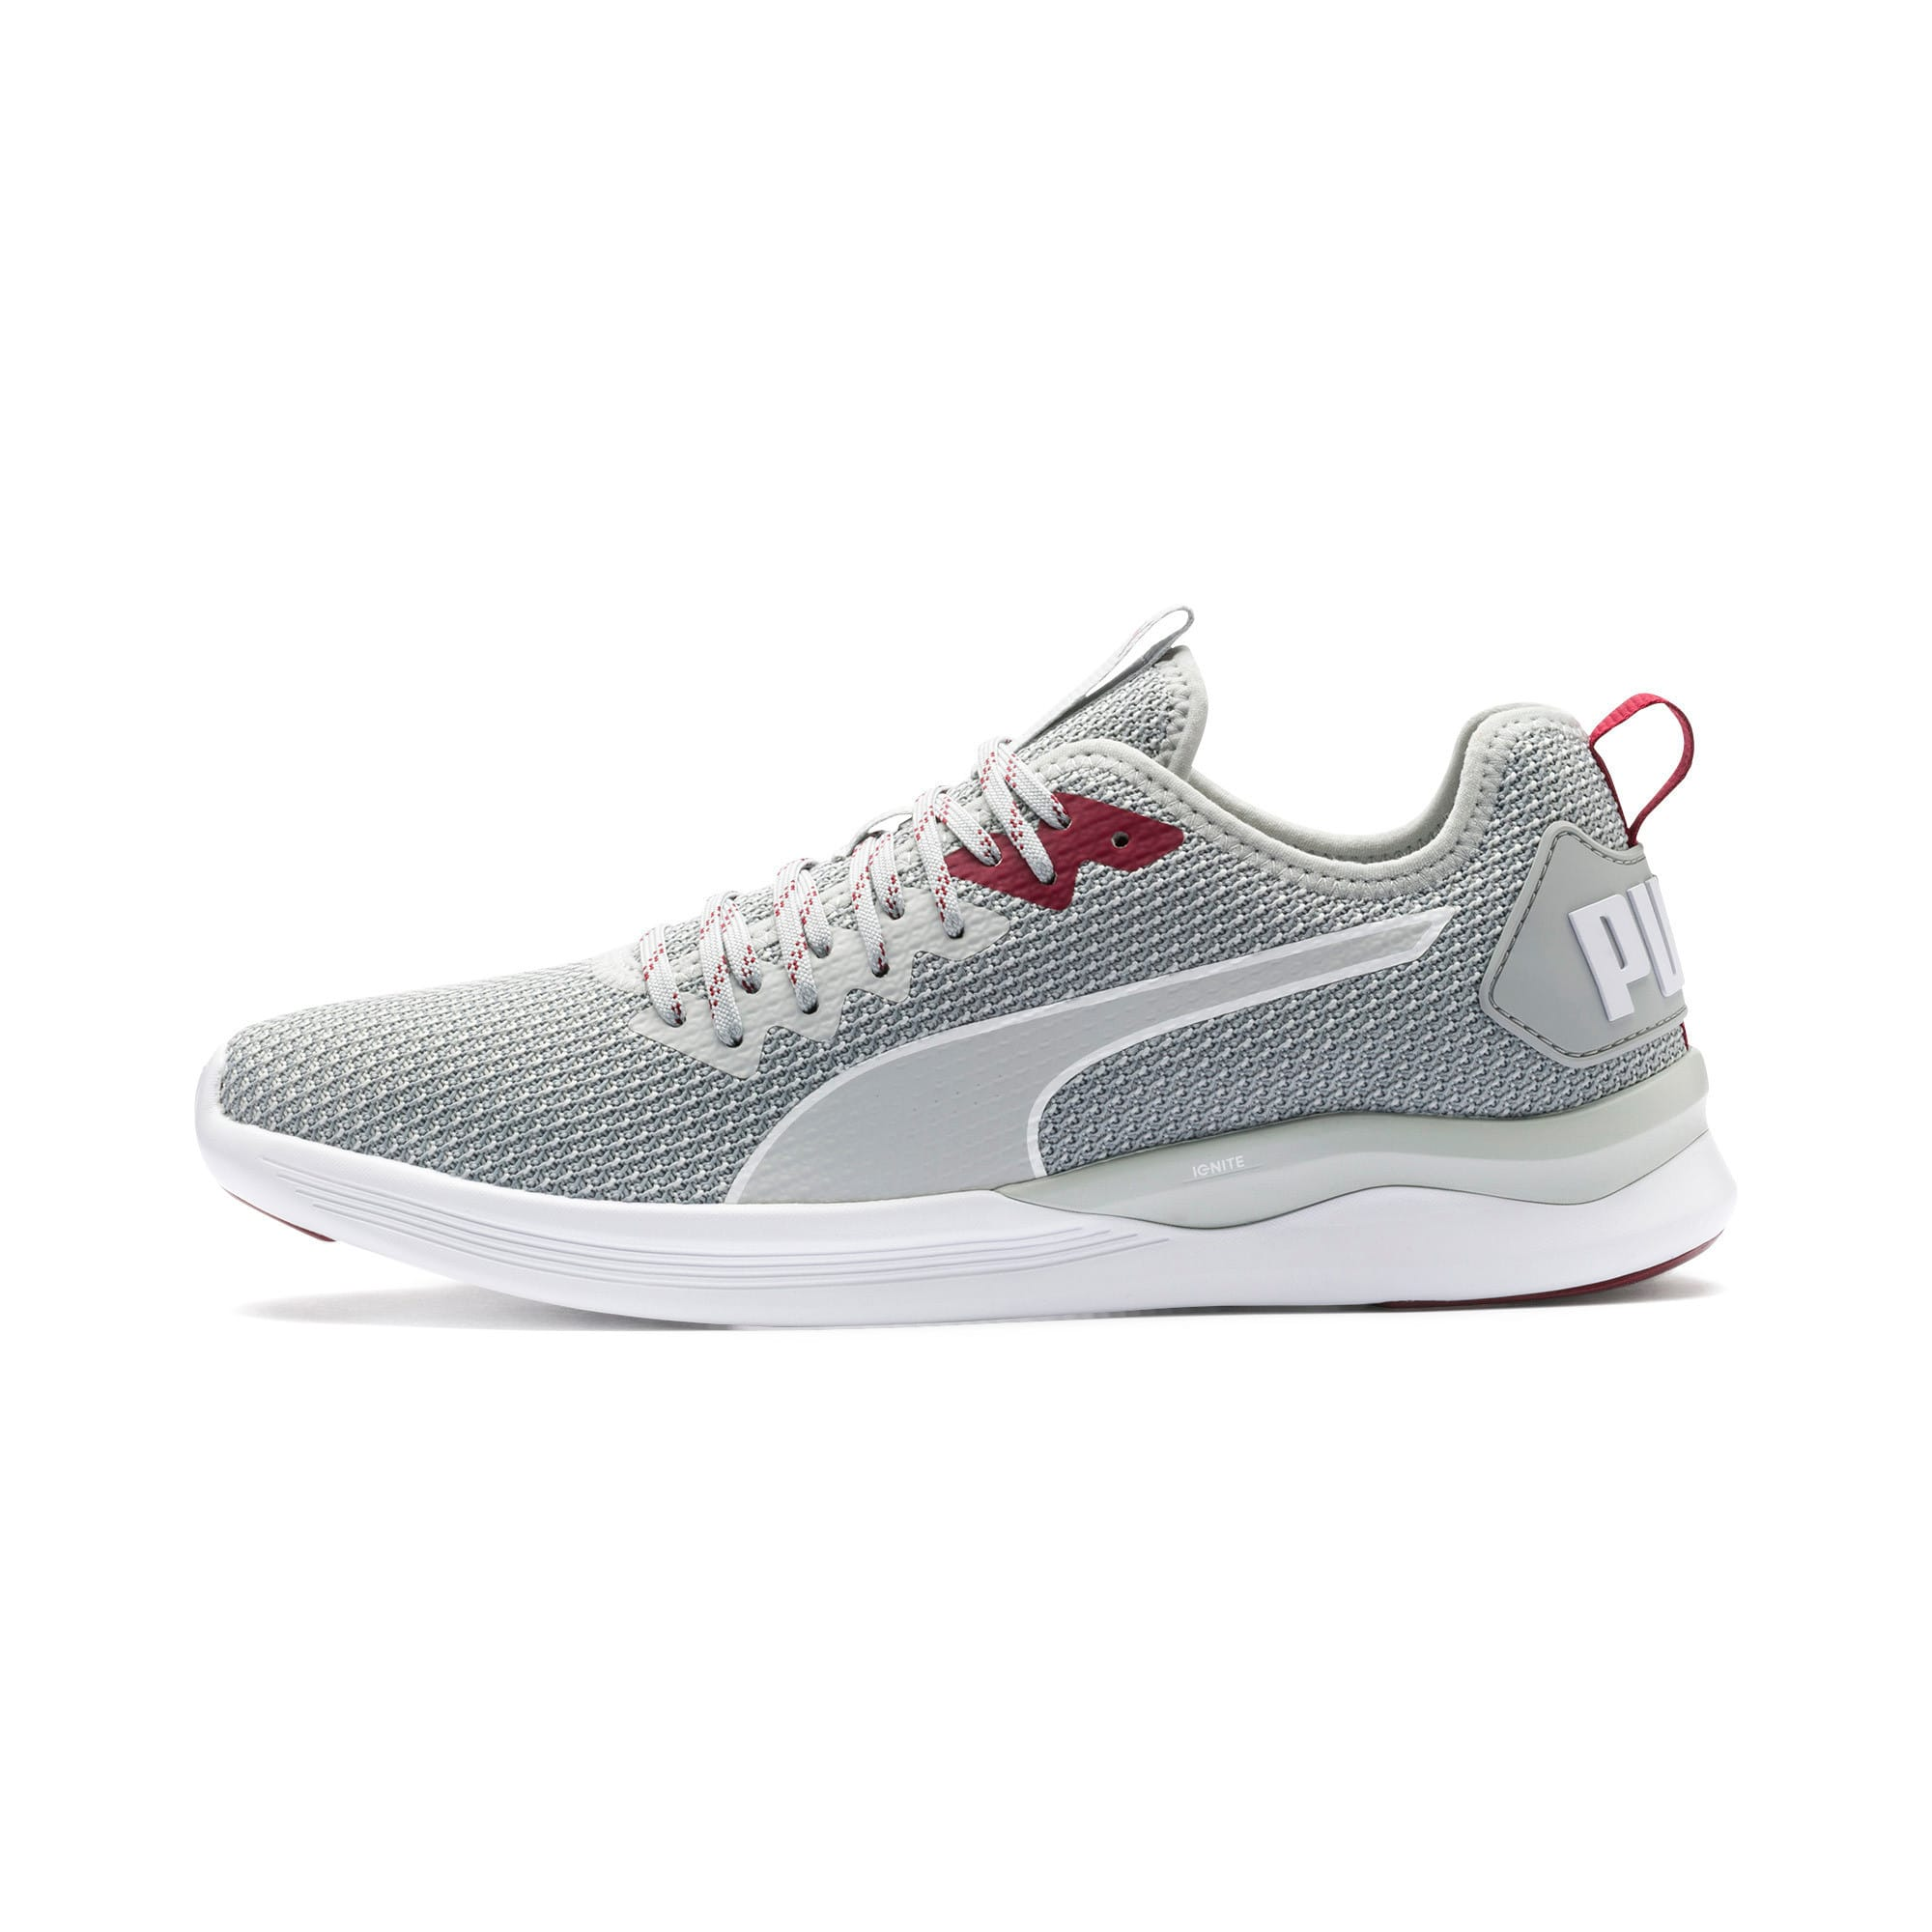 Thumbnail 1 of Scarpe Running IGNITE Flash FS uomo, High Rise-Glacier Gray-White, medium